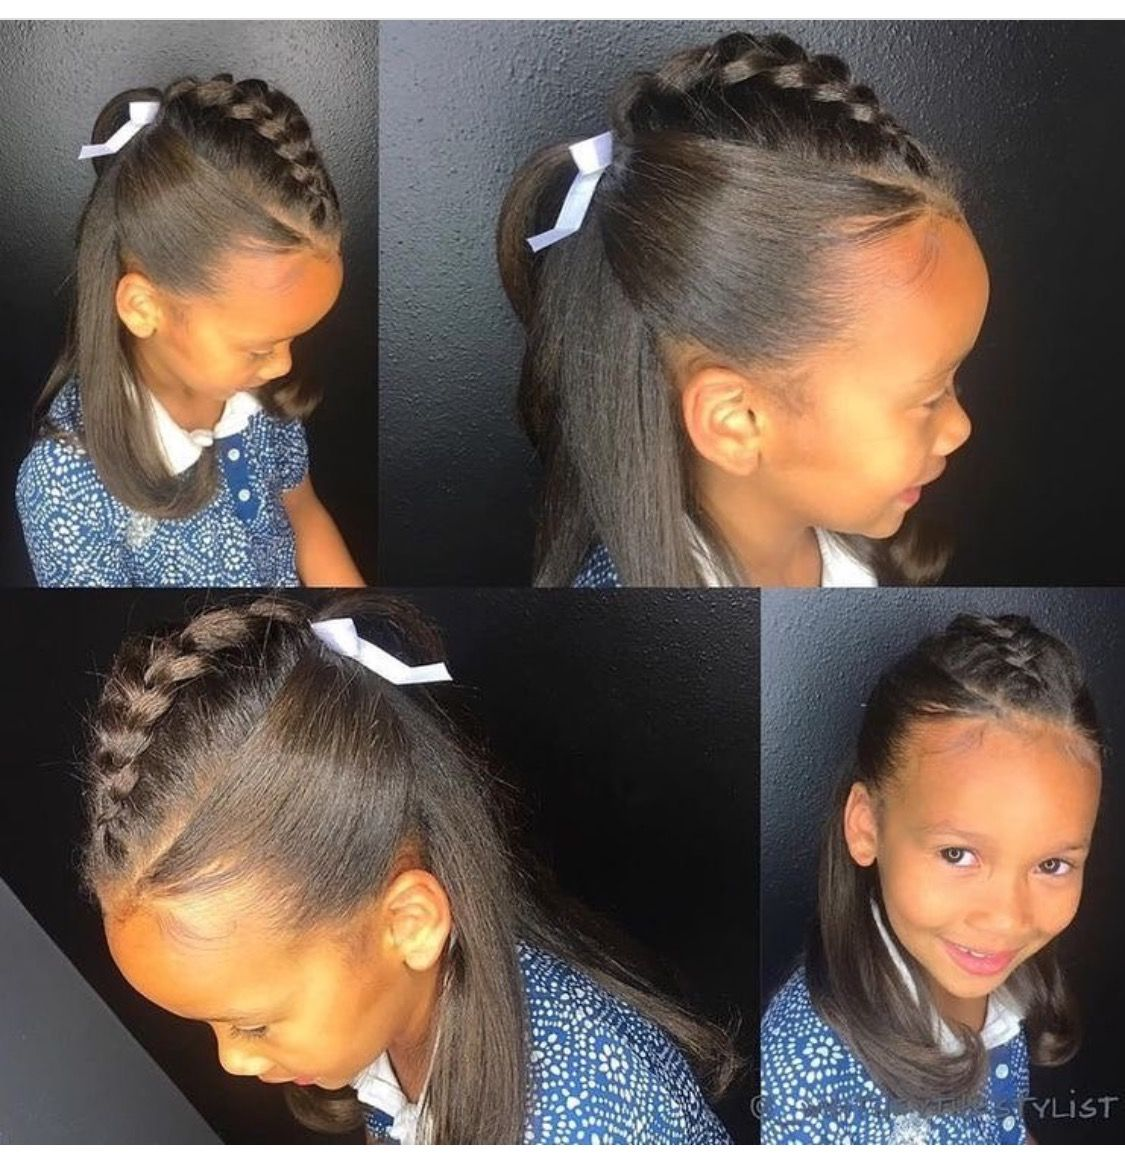 Cute Hairstyles Kayla Hair Styles Natural Hair Styles Kids Hairstyles